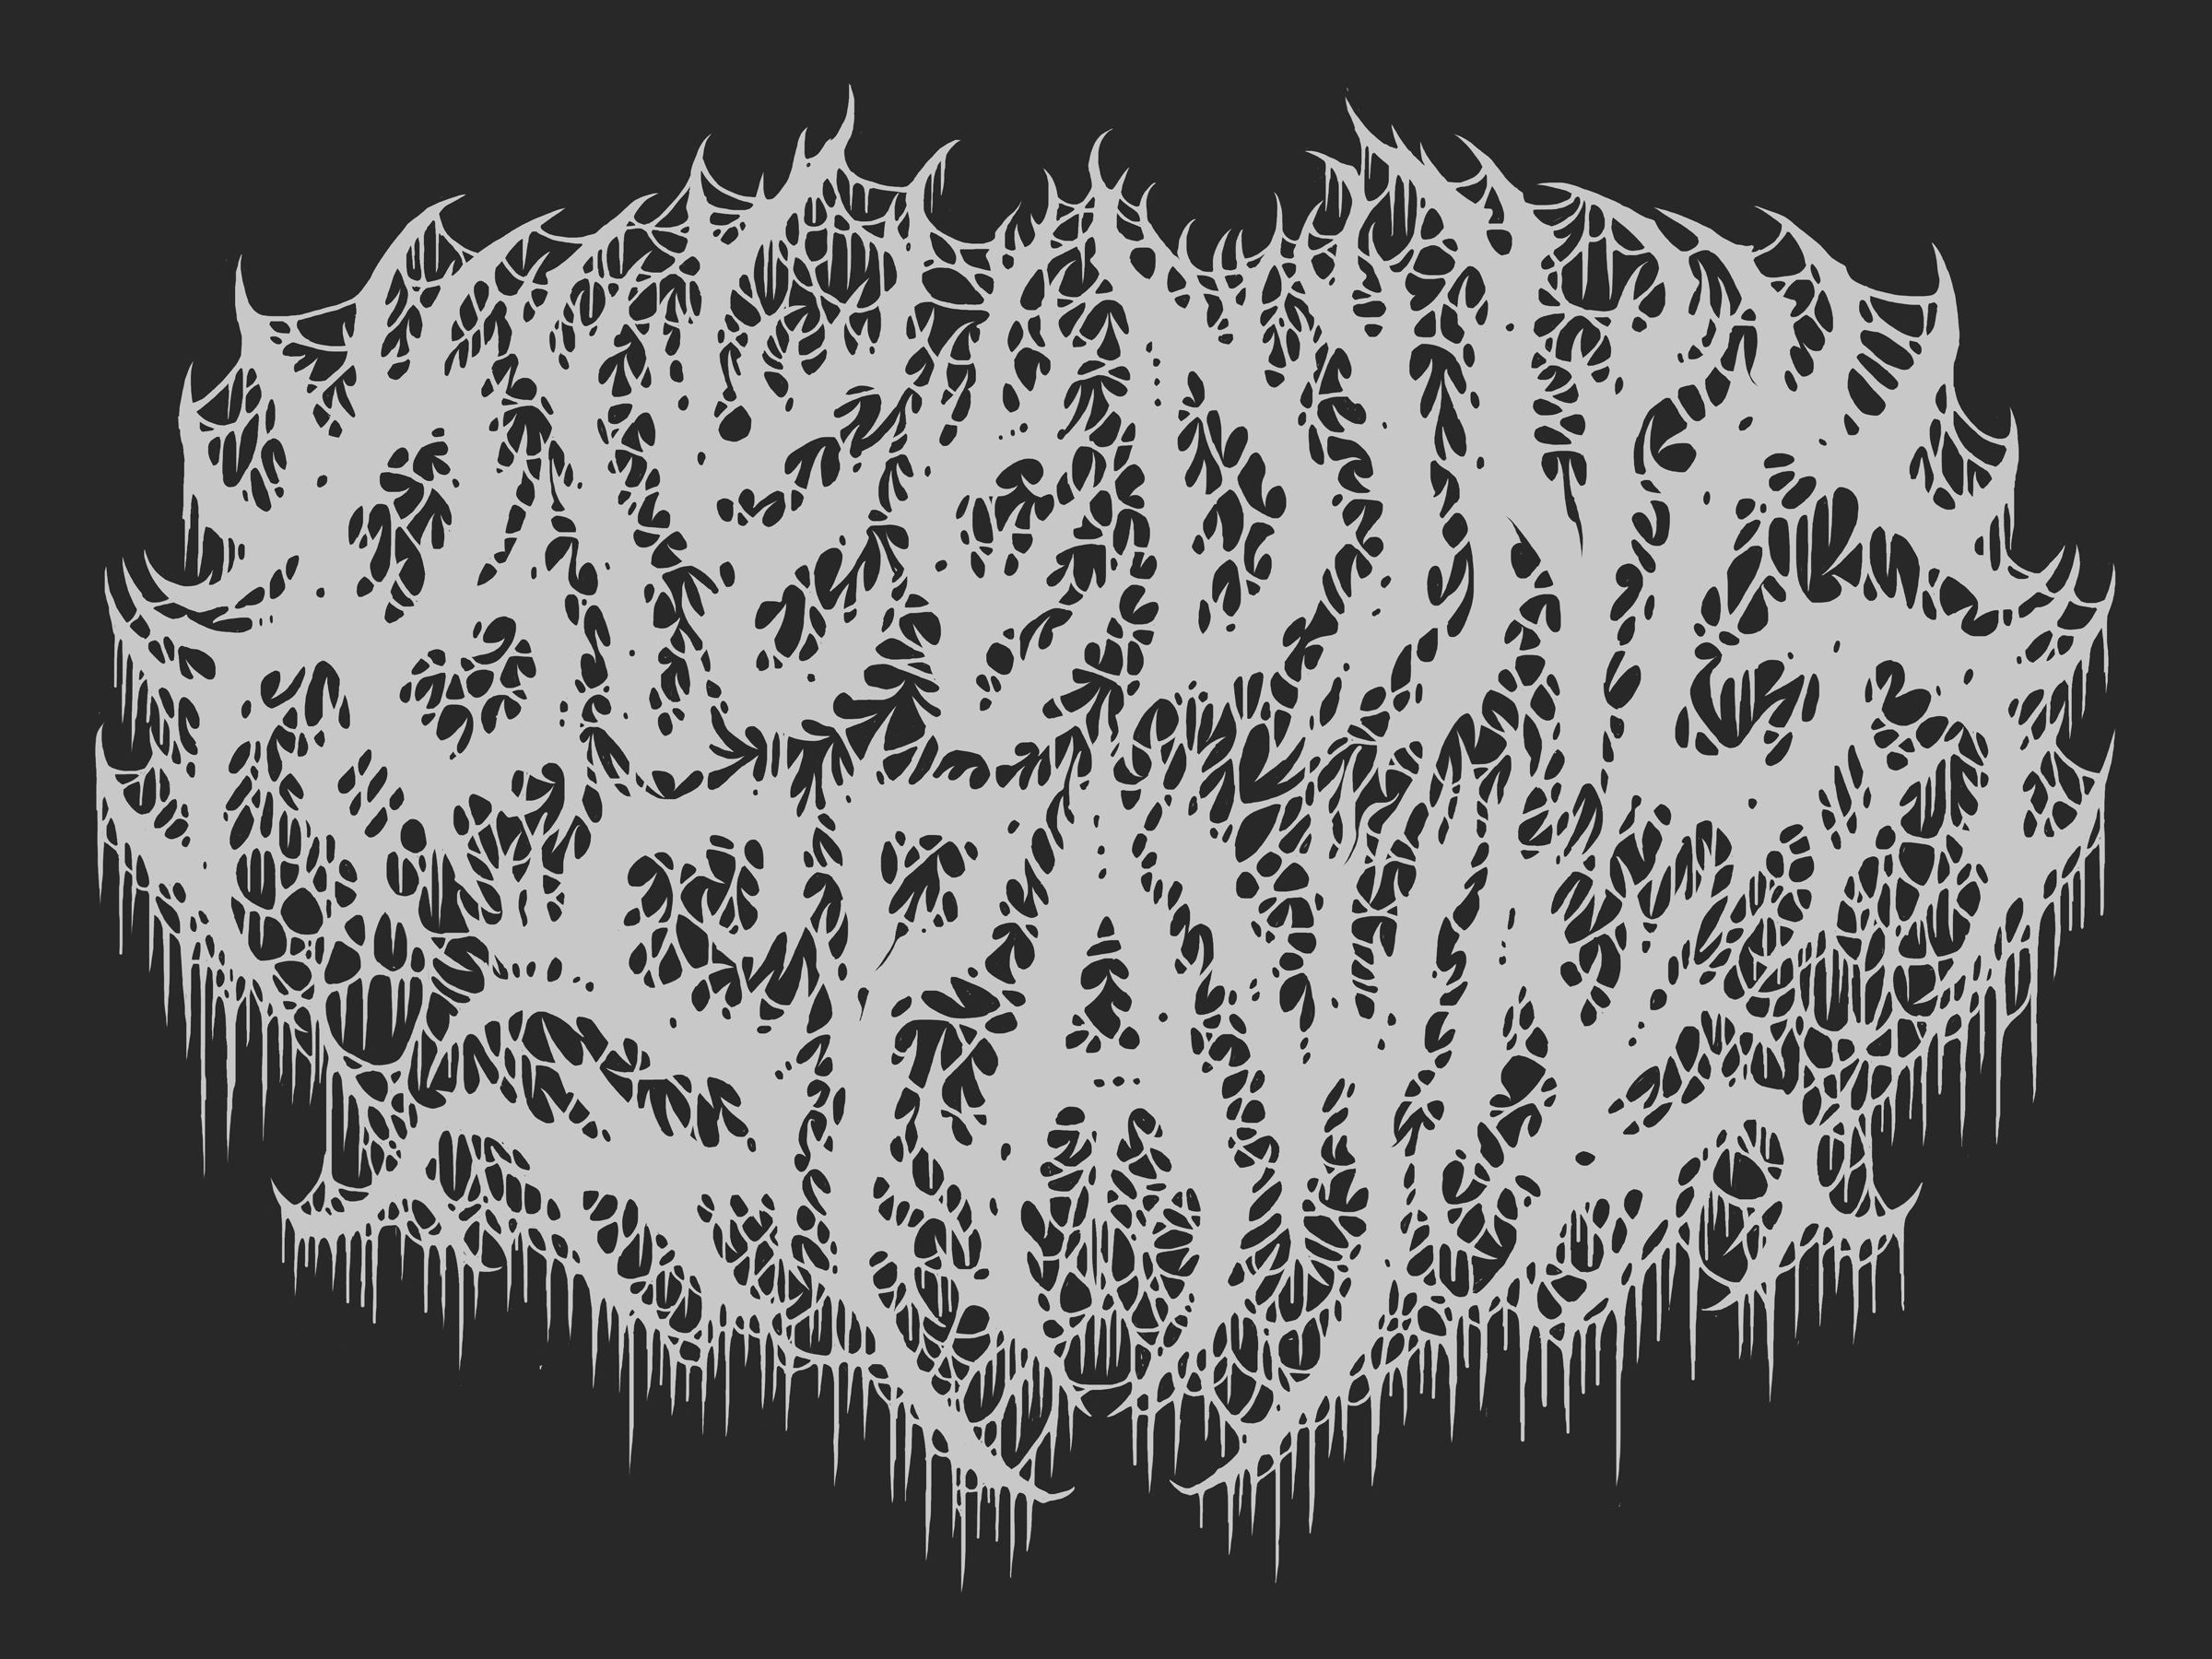 Bleeding Spawn band logo